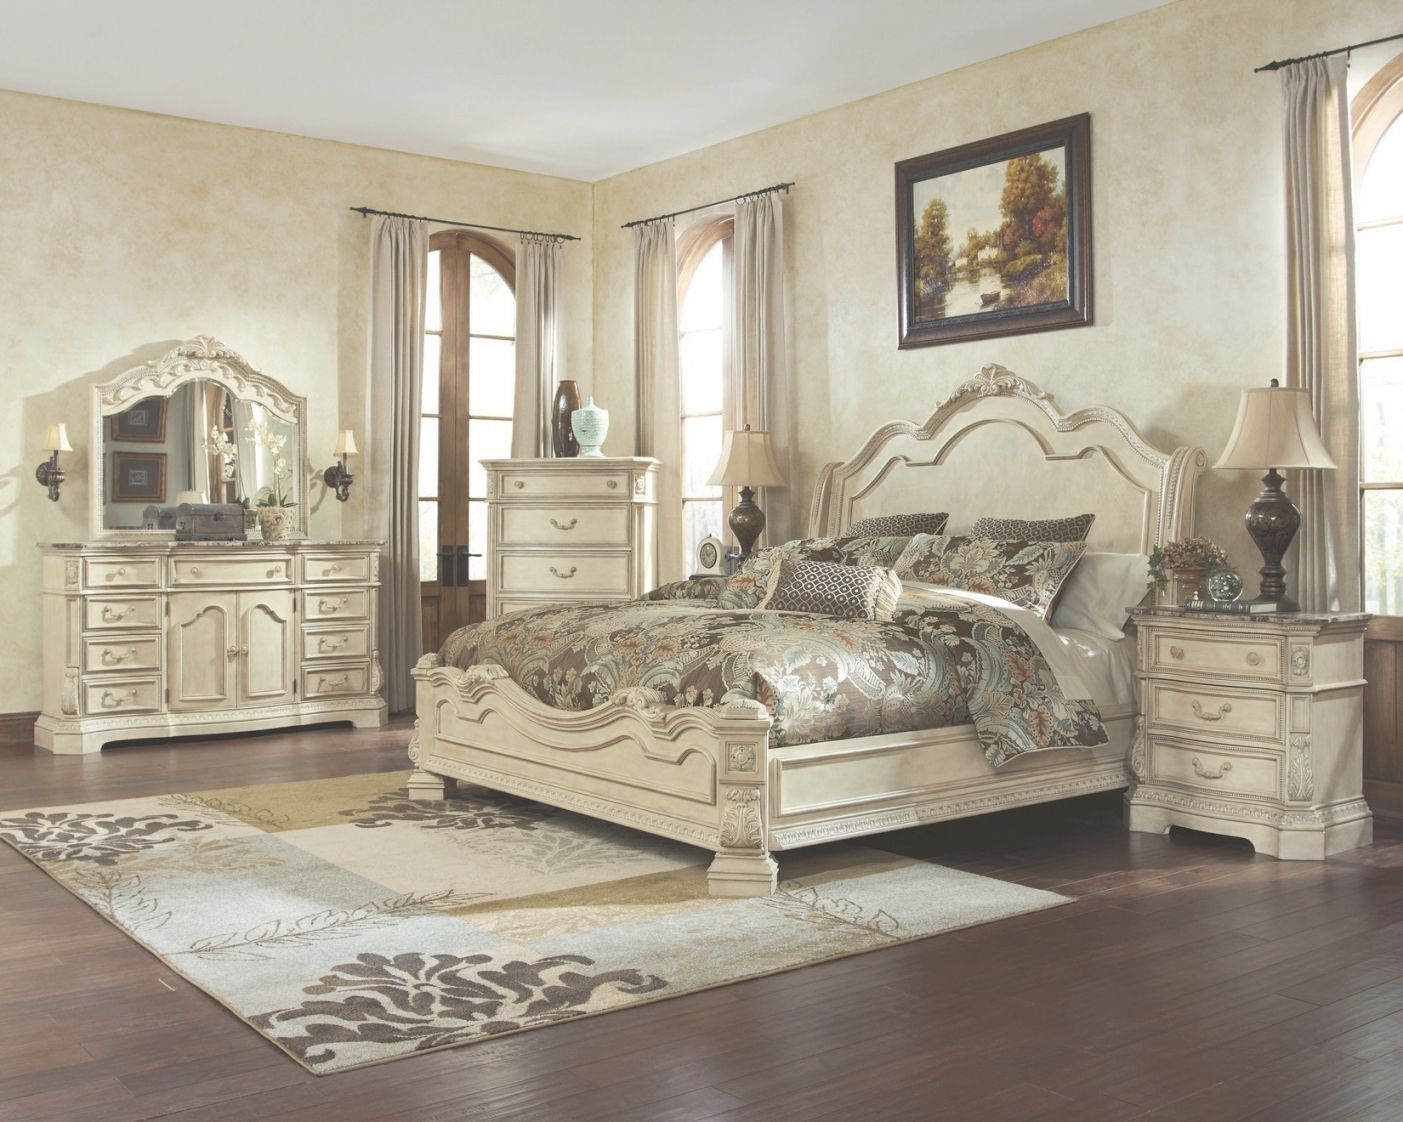 Awesome amazing beach style bedroom furniture in home decoration